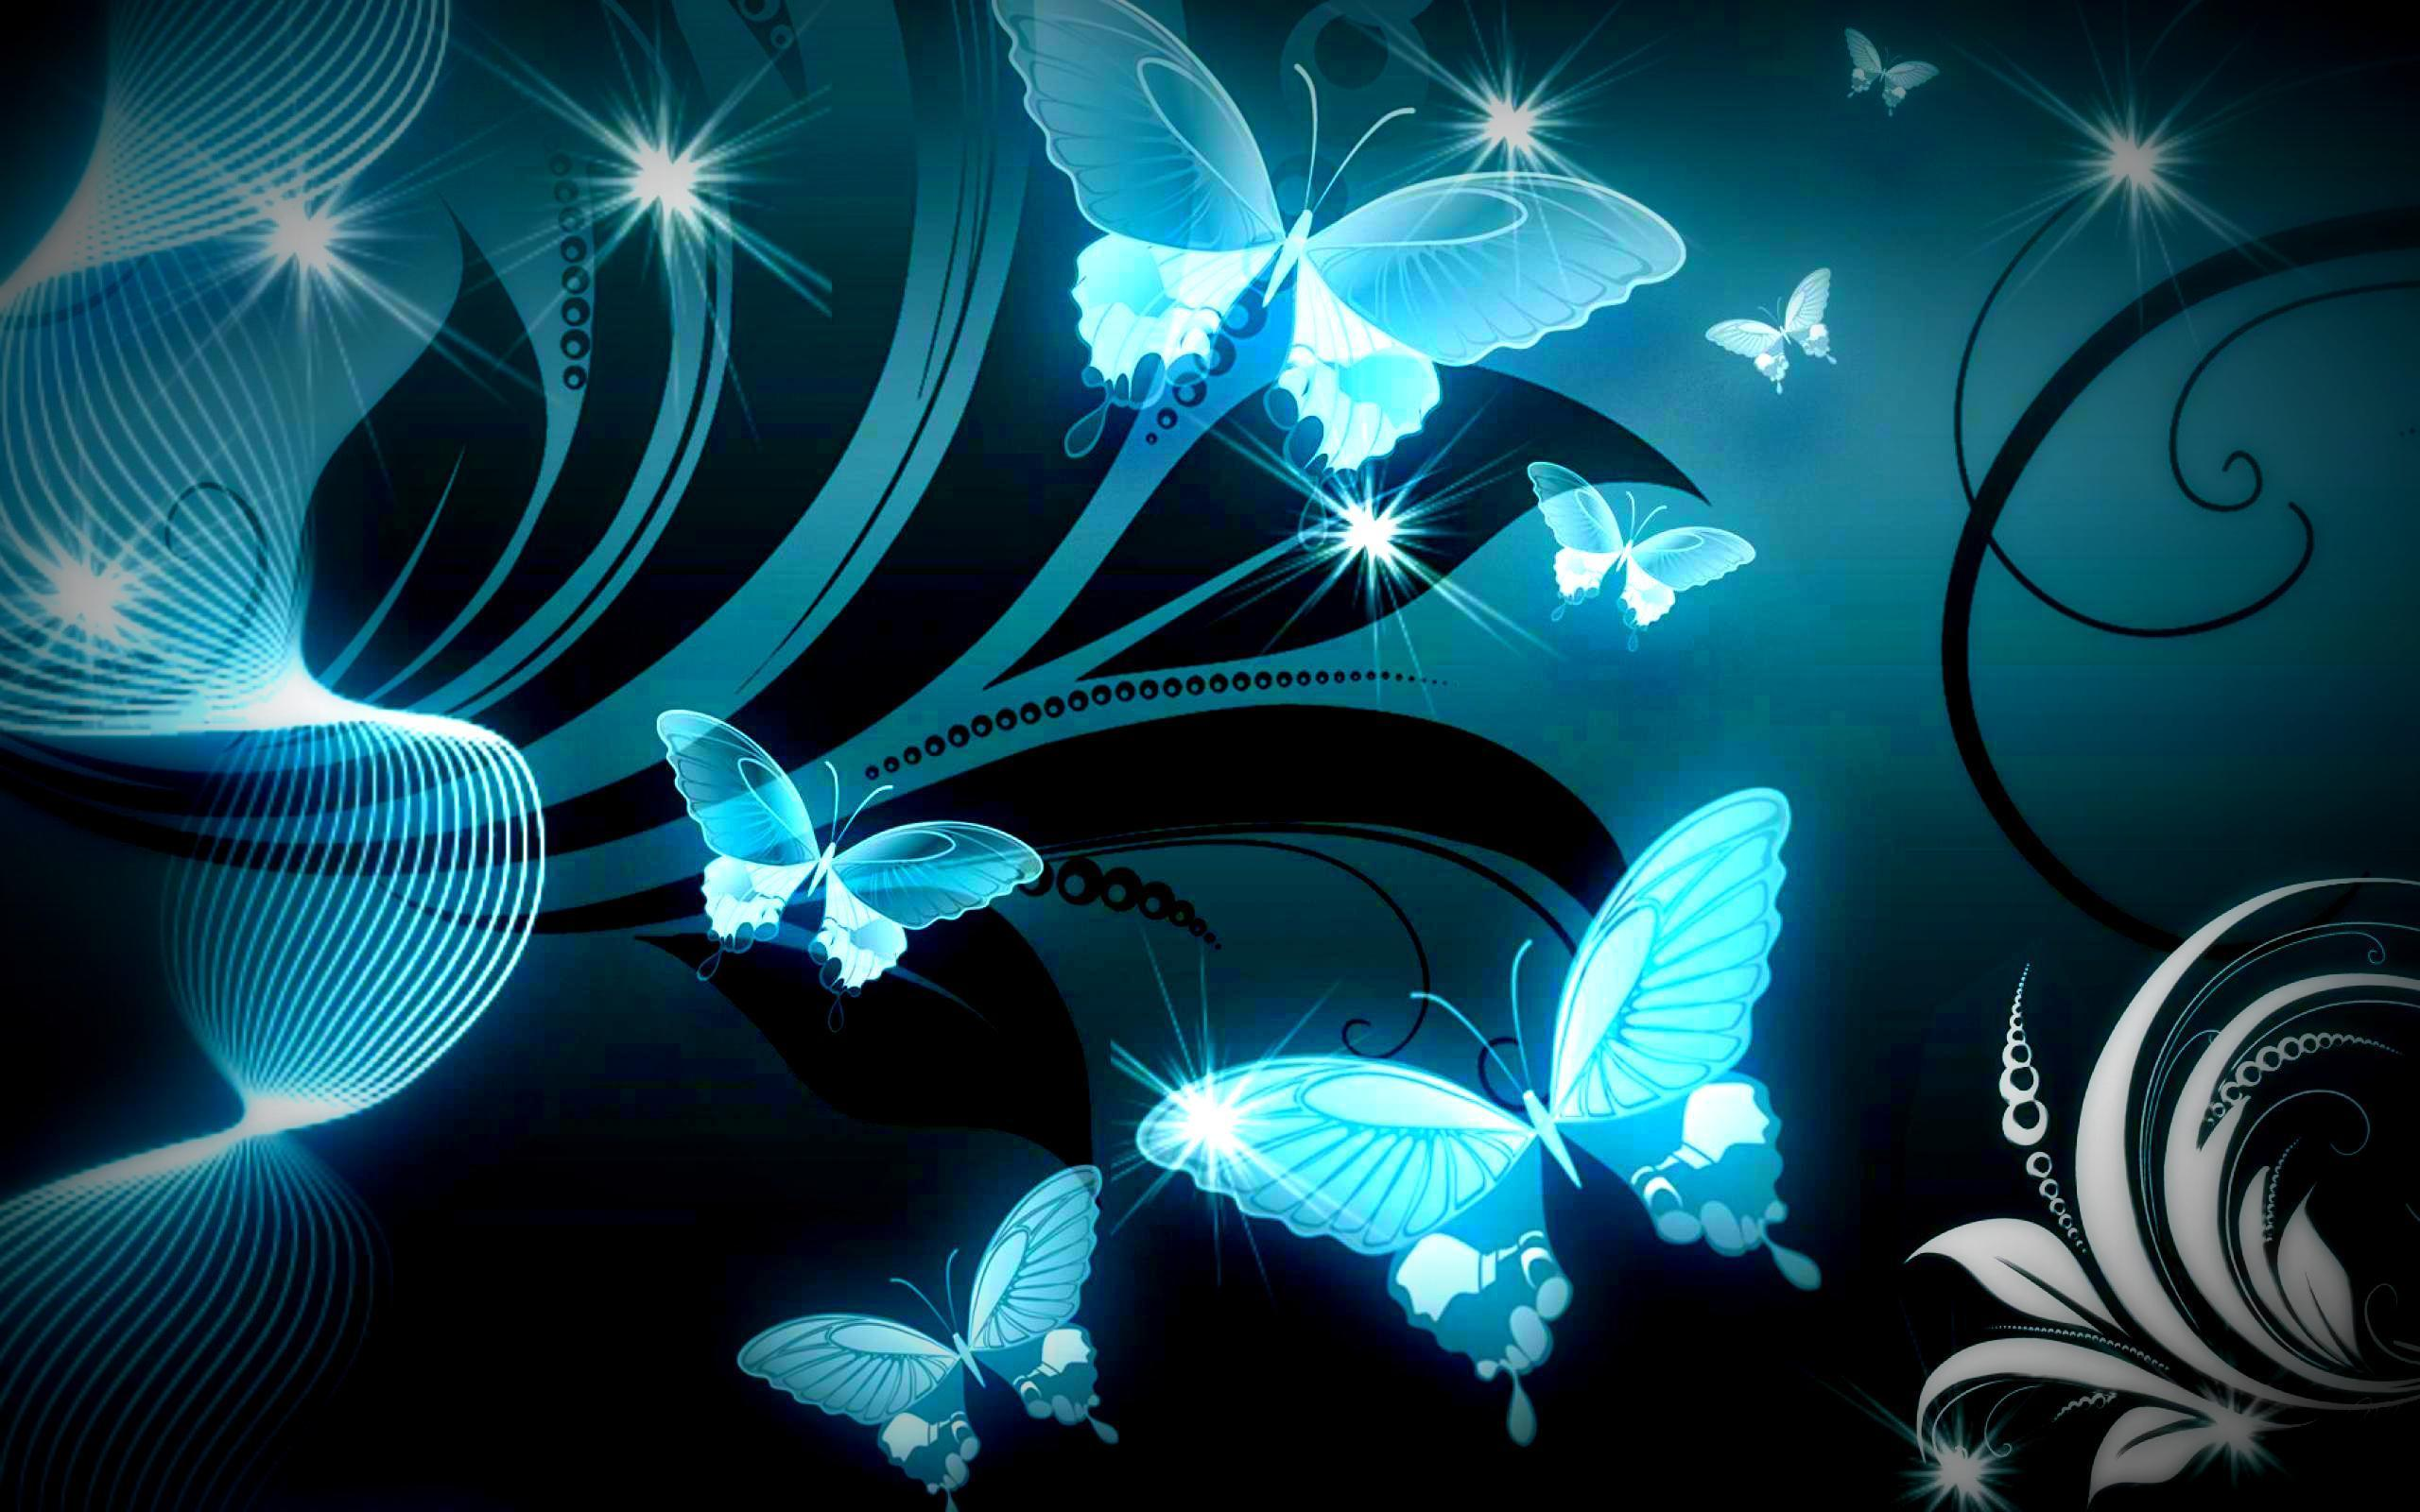 Wallpapers Butterfly for Android   APK Download 2560x1600